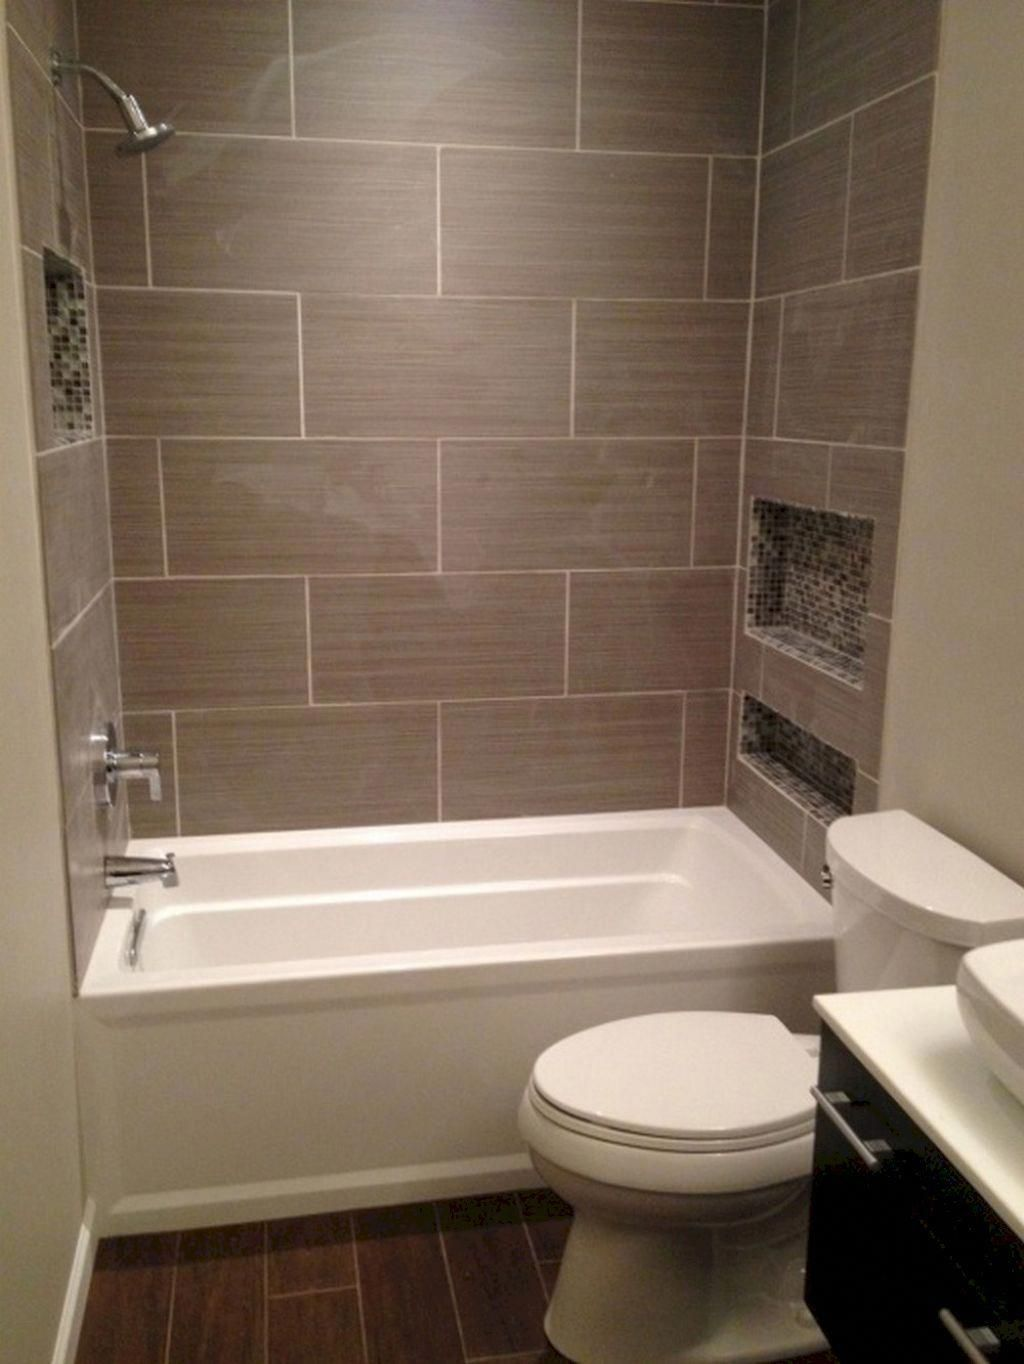 7 Refined Tips Bathroom Remodel Colors White Tiles Bathroom Remodel Mirror Crown Moldings Bathroom Remode Small Bathroom Bathtubs For Small Bathrooms